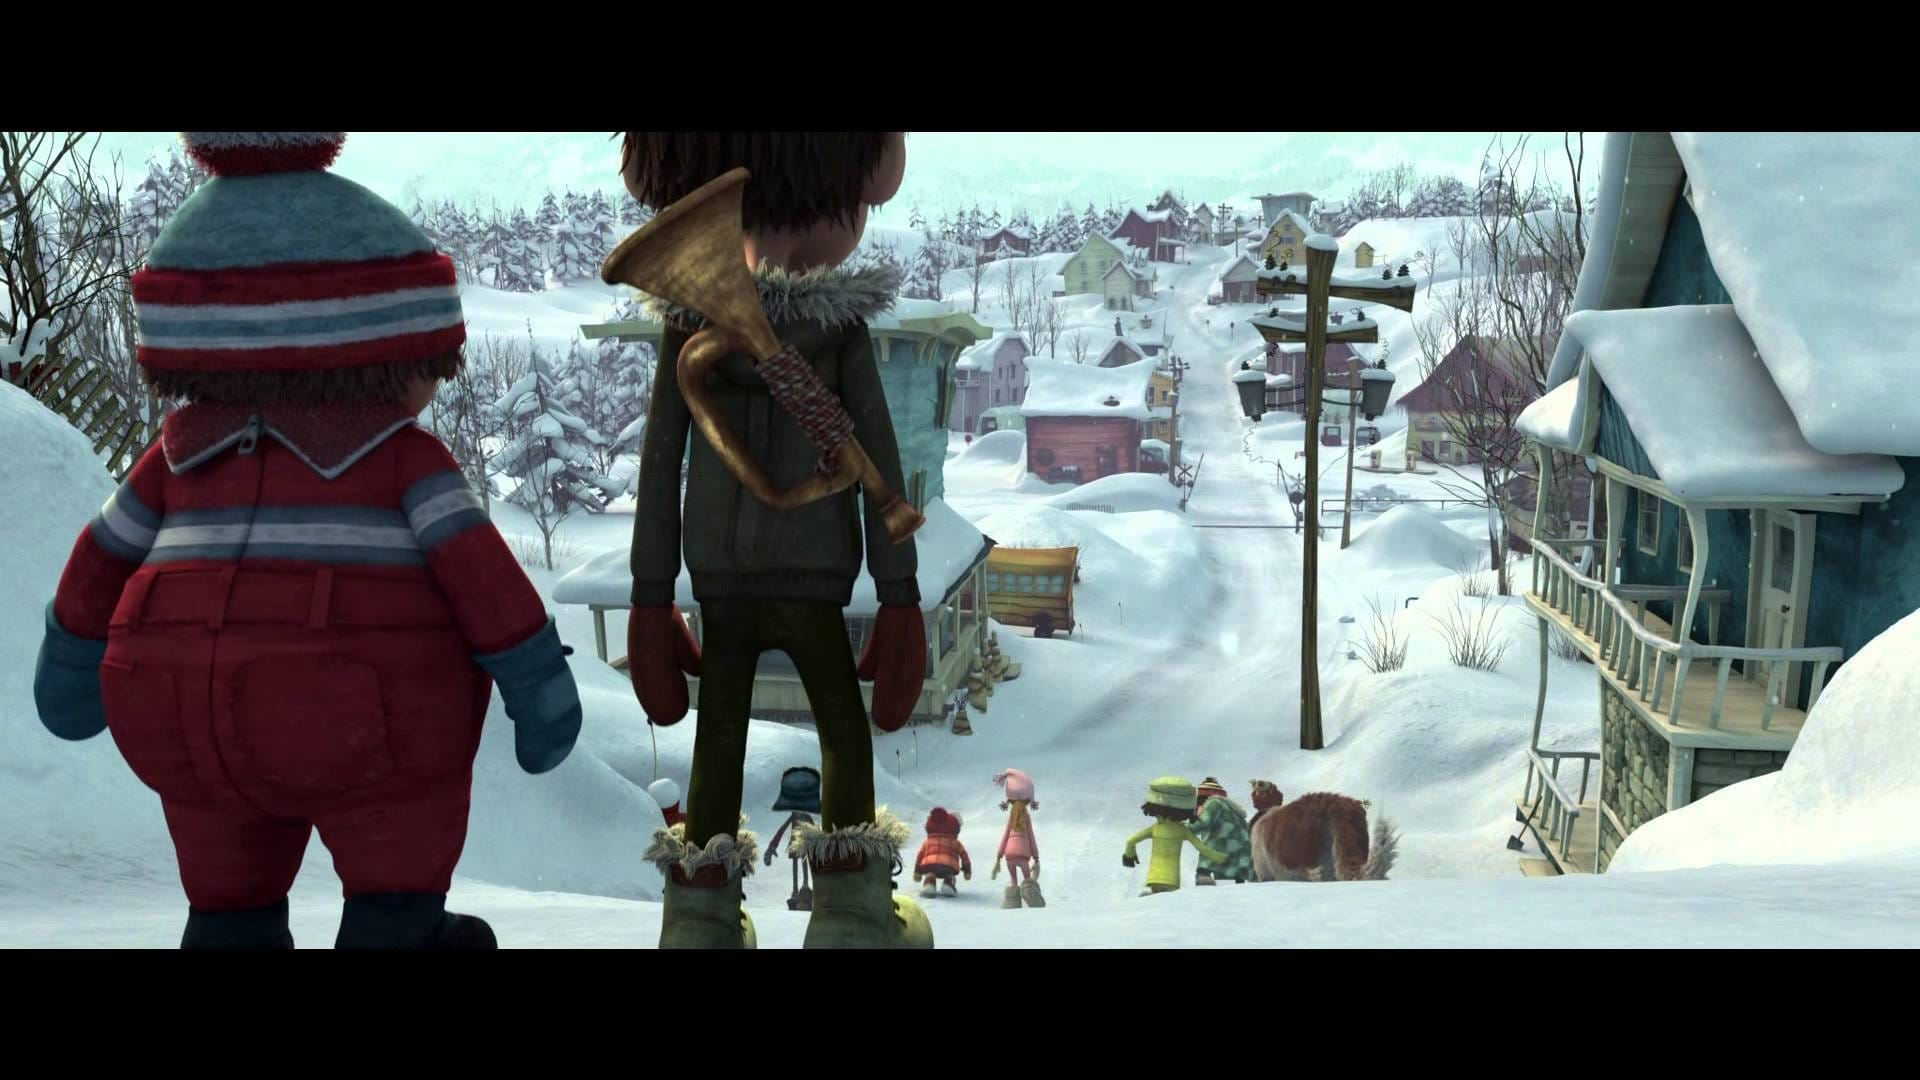 Des Films En Streaming Watch Snowtime Movies Online Streaming Film En Streaming